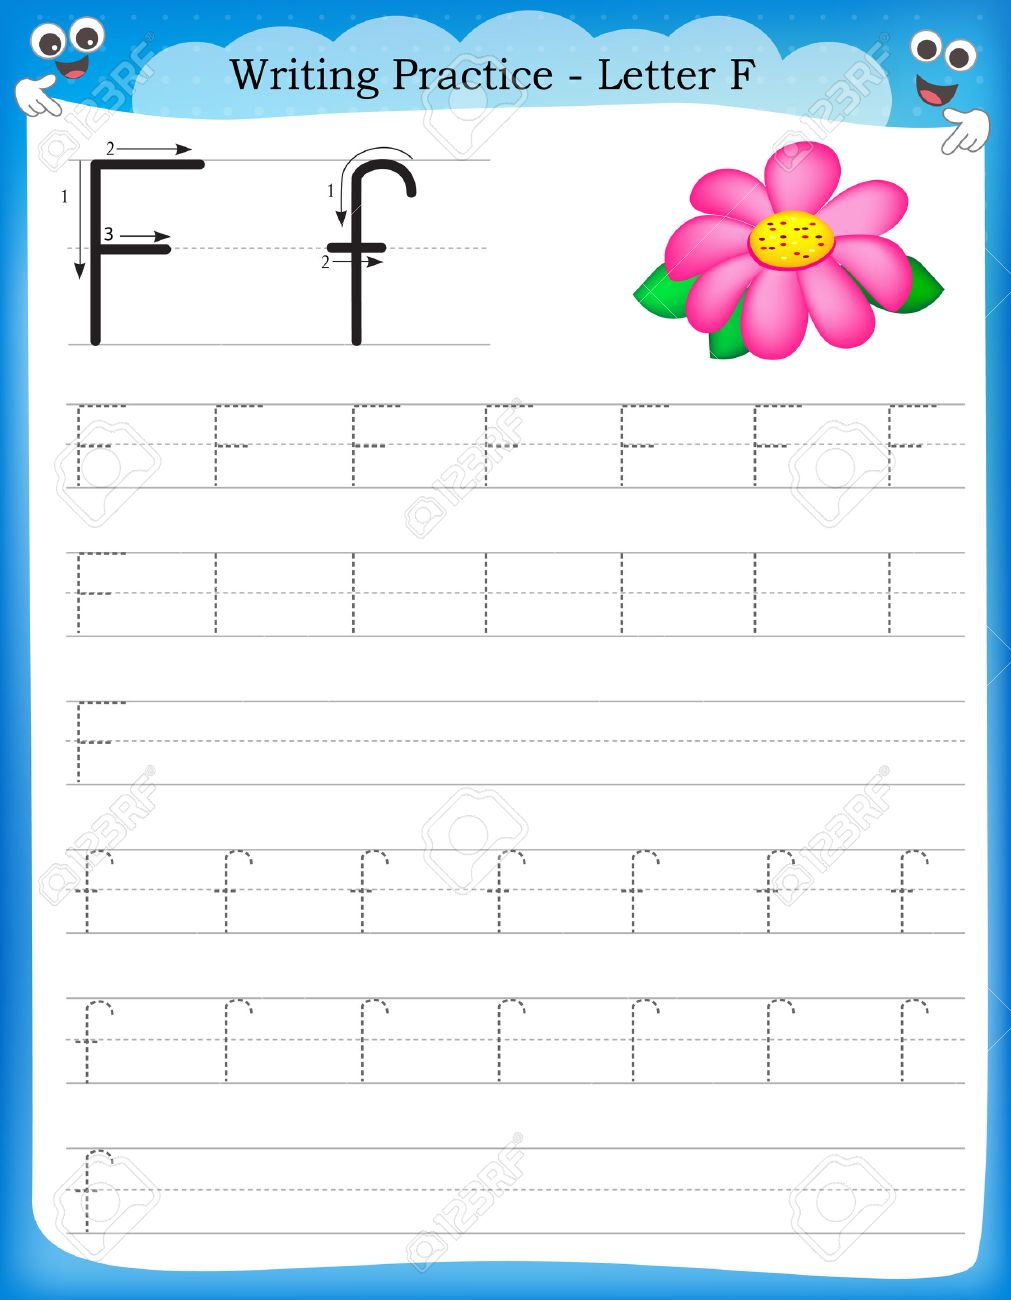 writing practice letter f printable worksheet for preschool